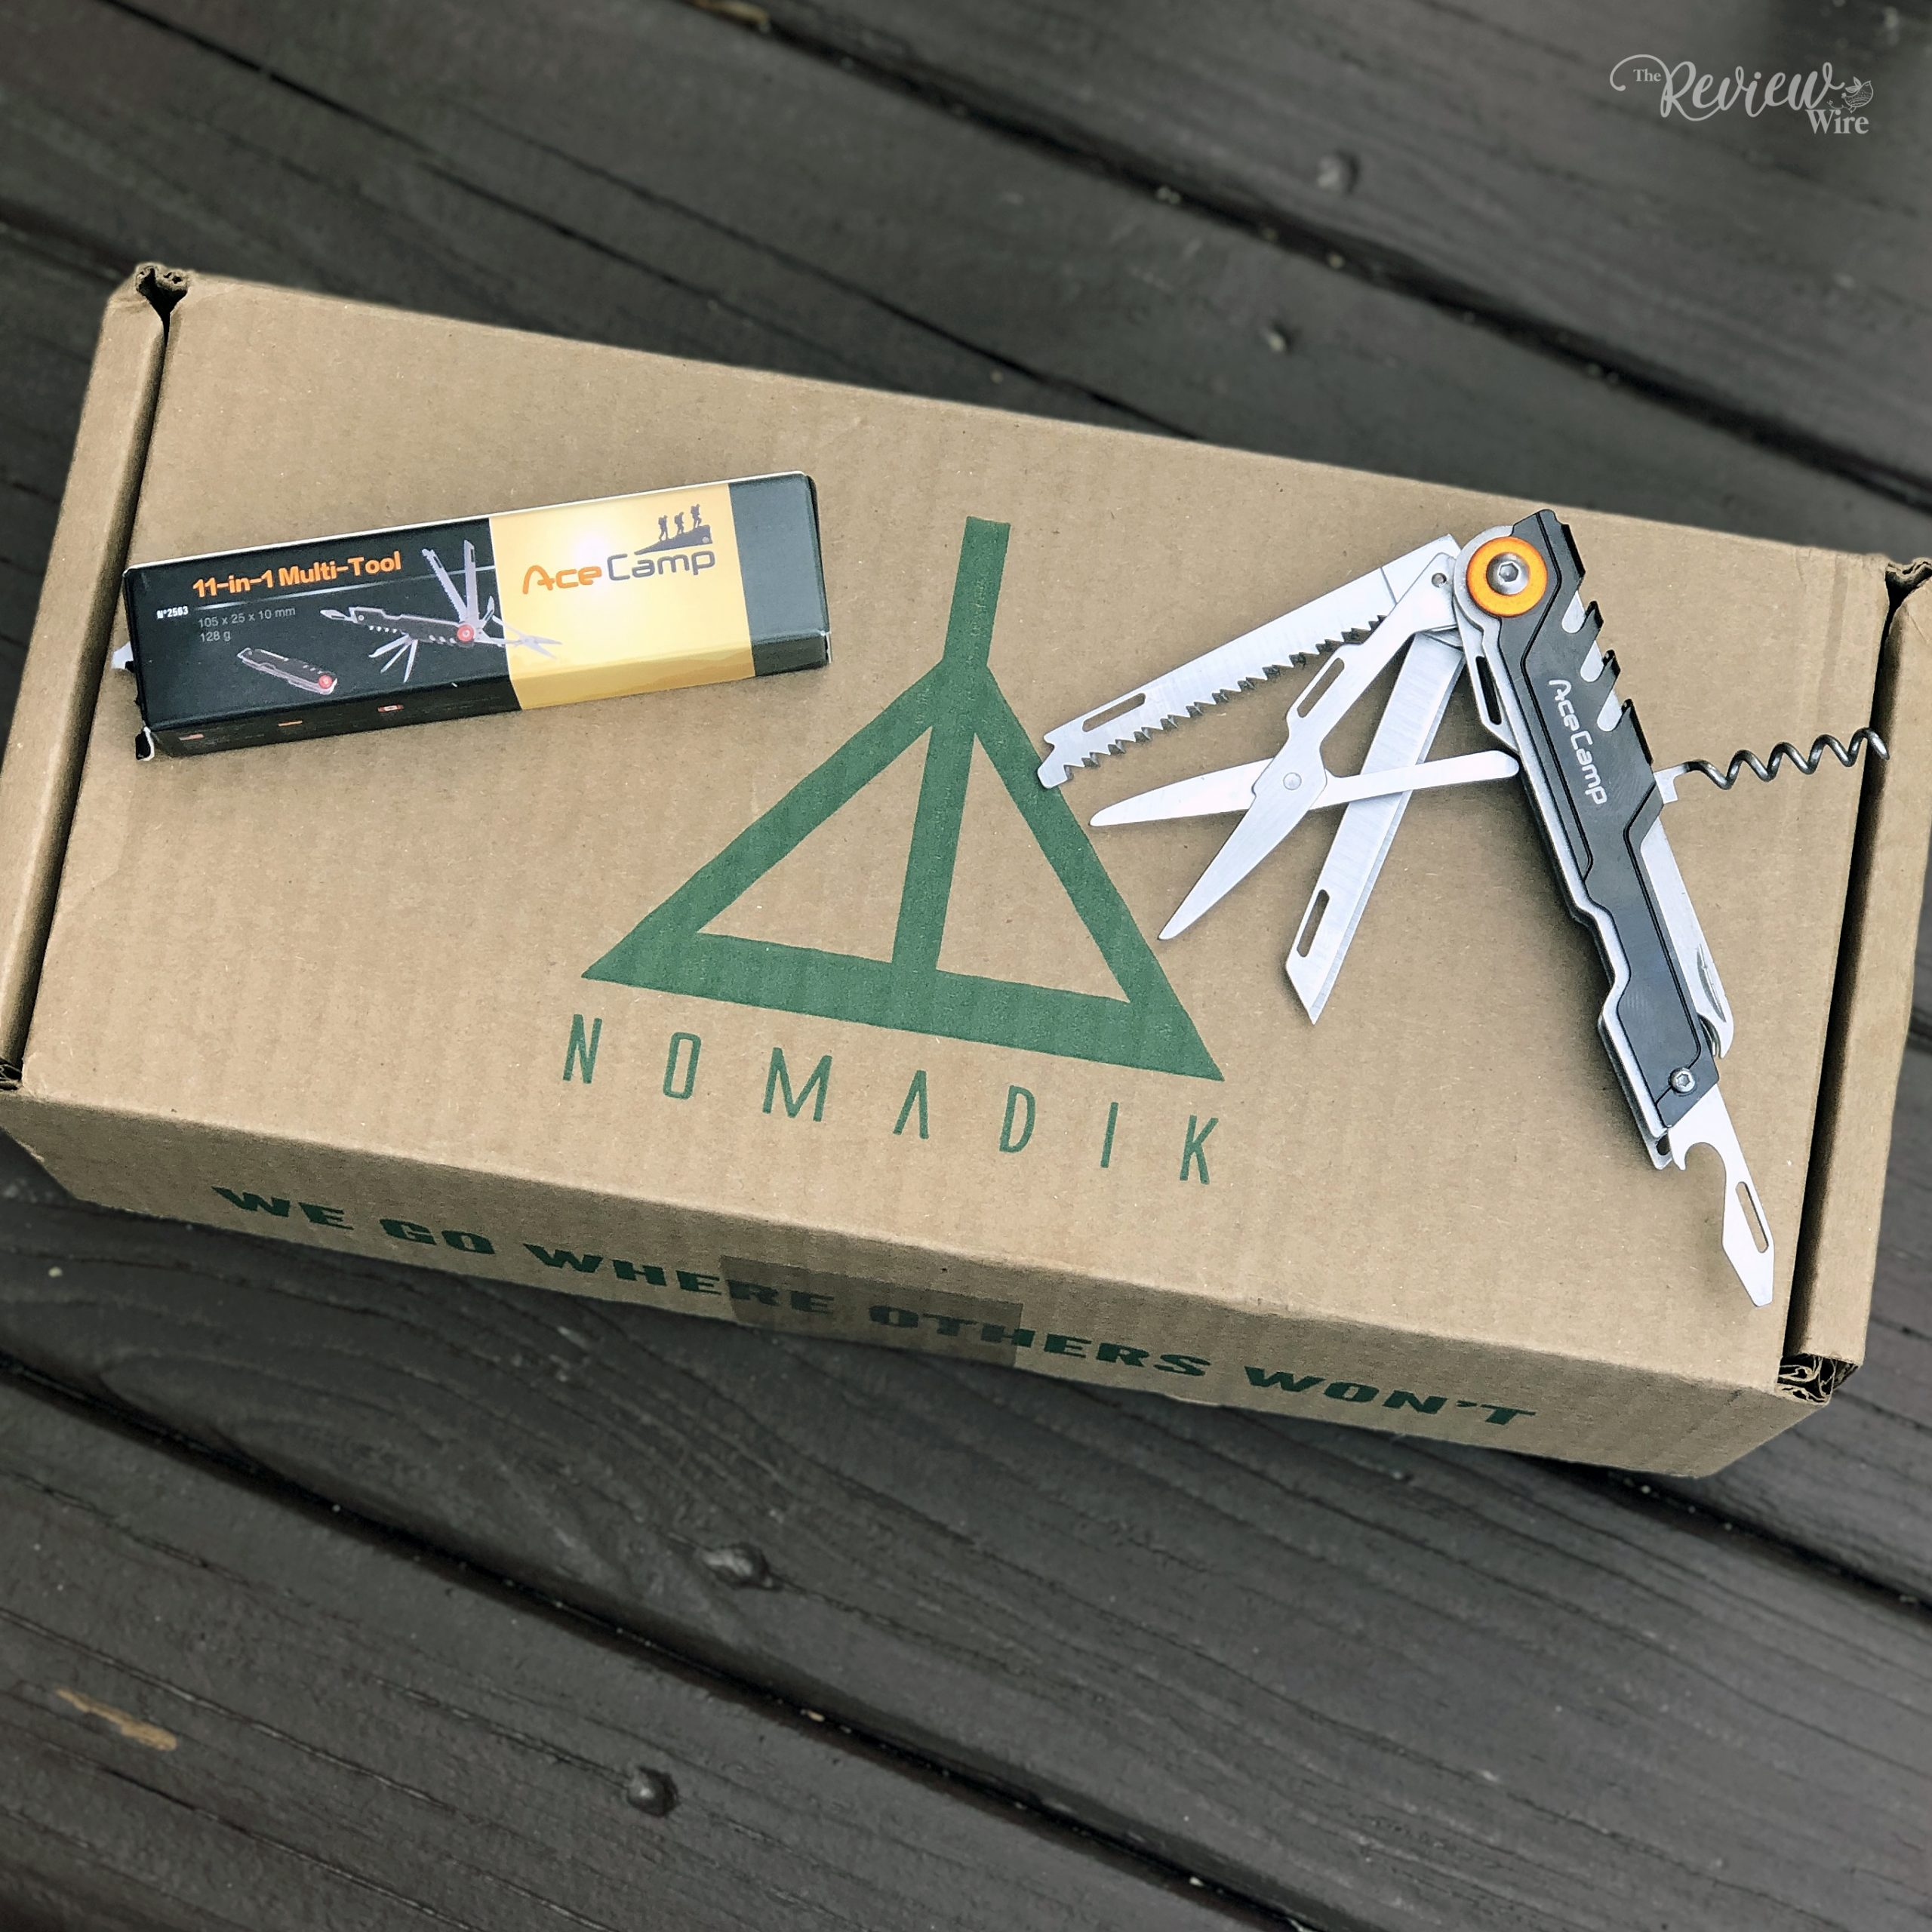 The Review Wire - The Nomadik - Ace Camp 11-in-1 Multi-tool